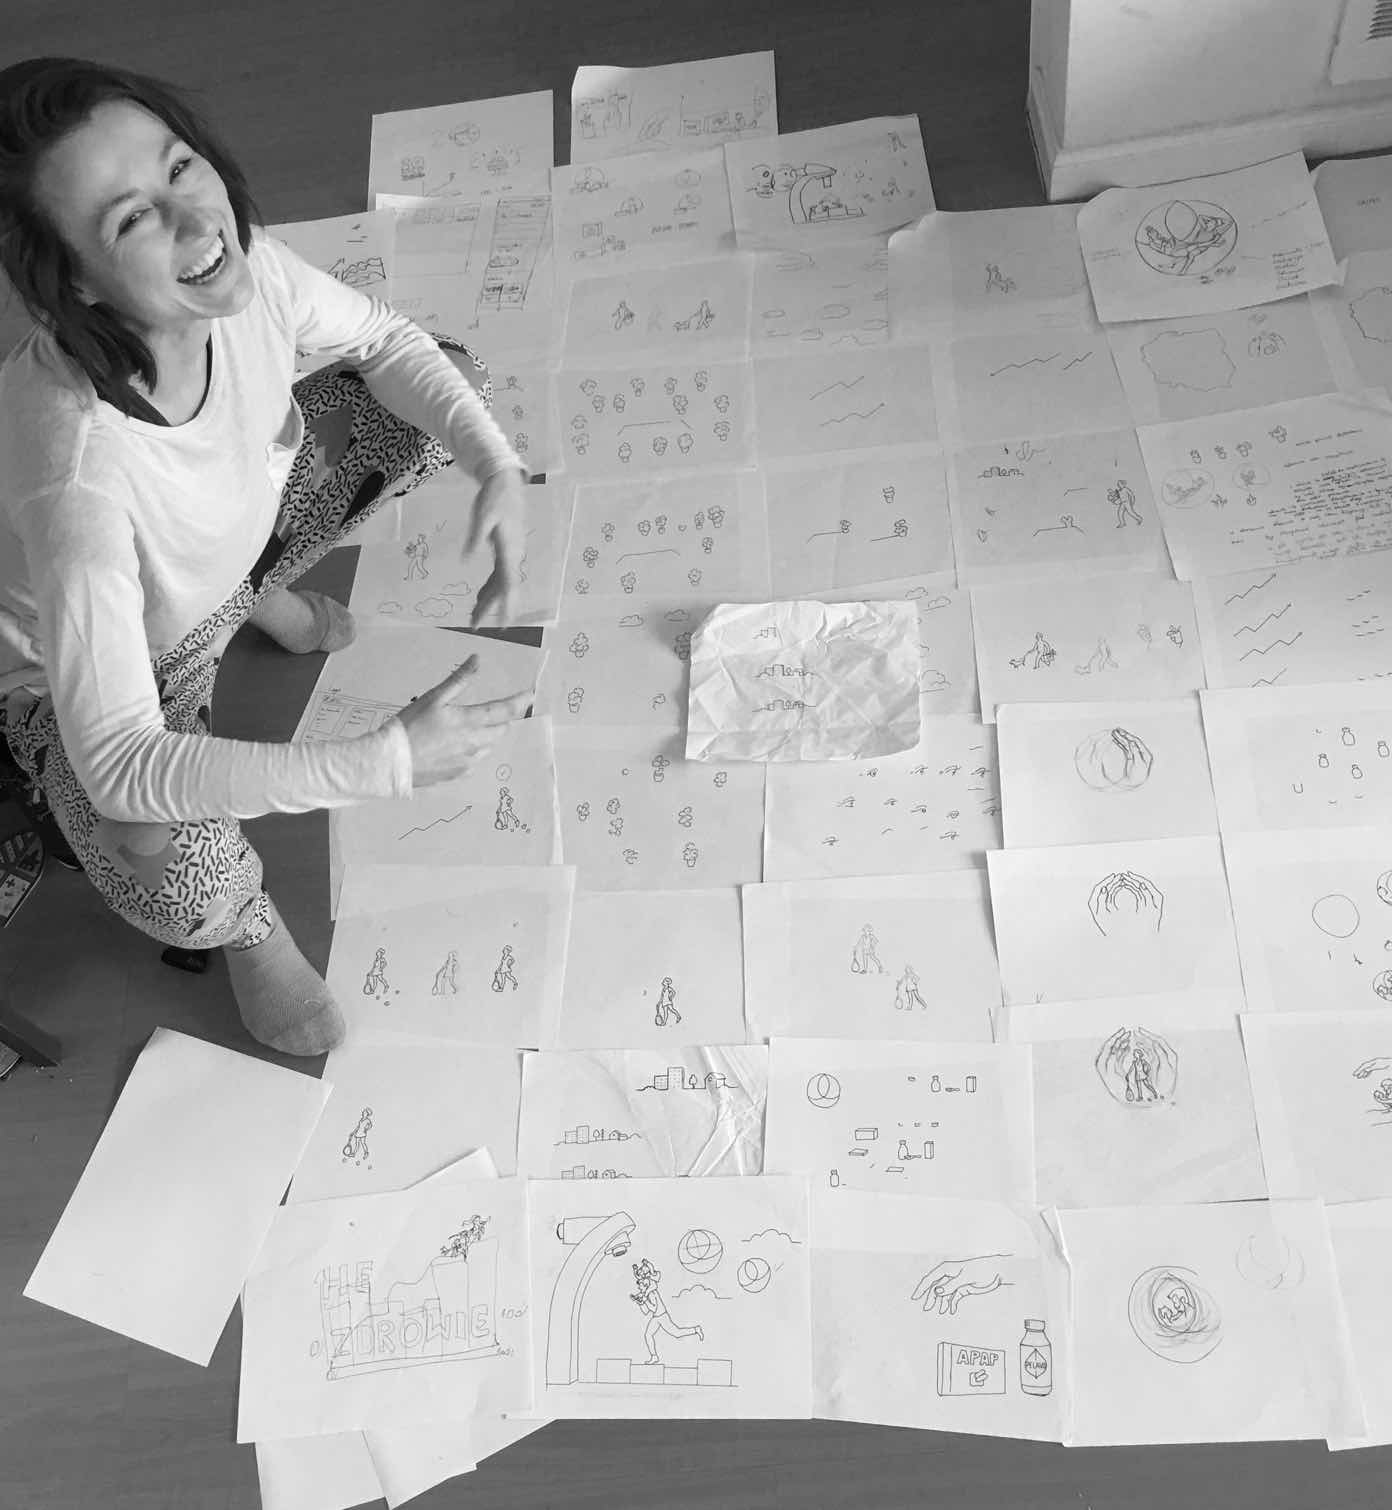 Ania in front of floor filled with sketches